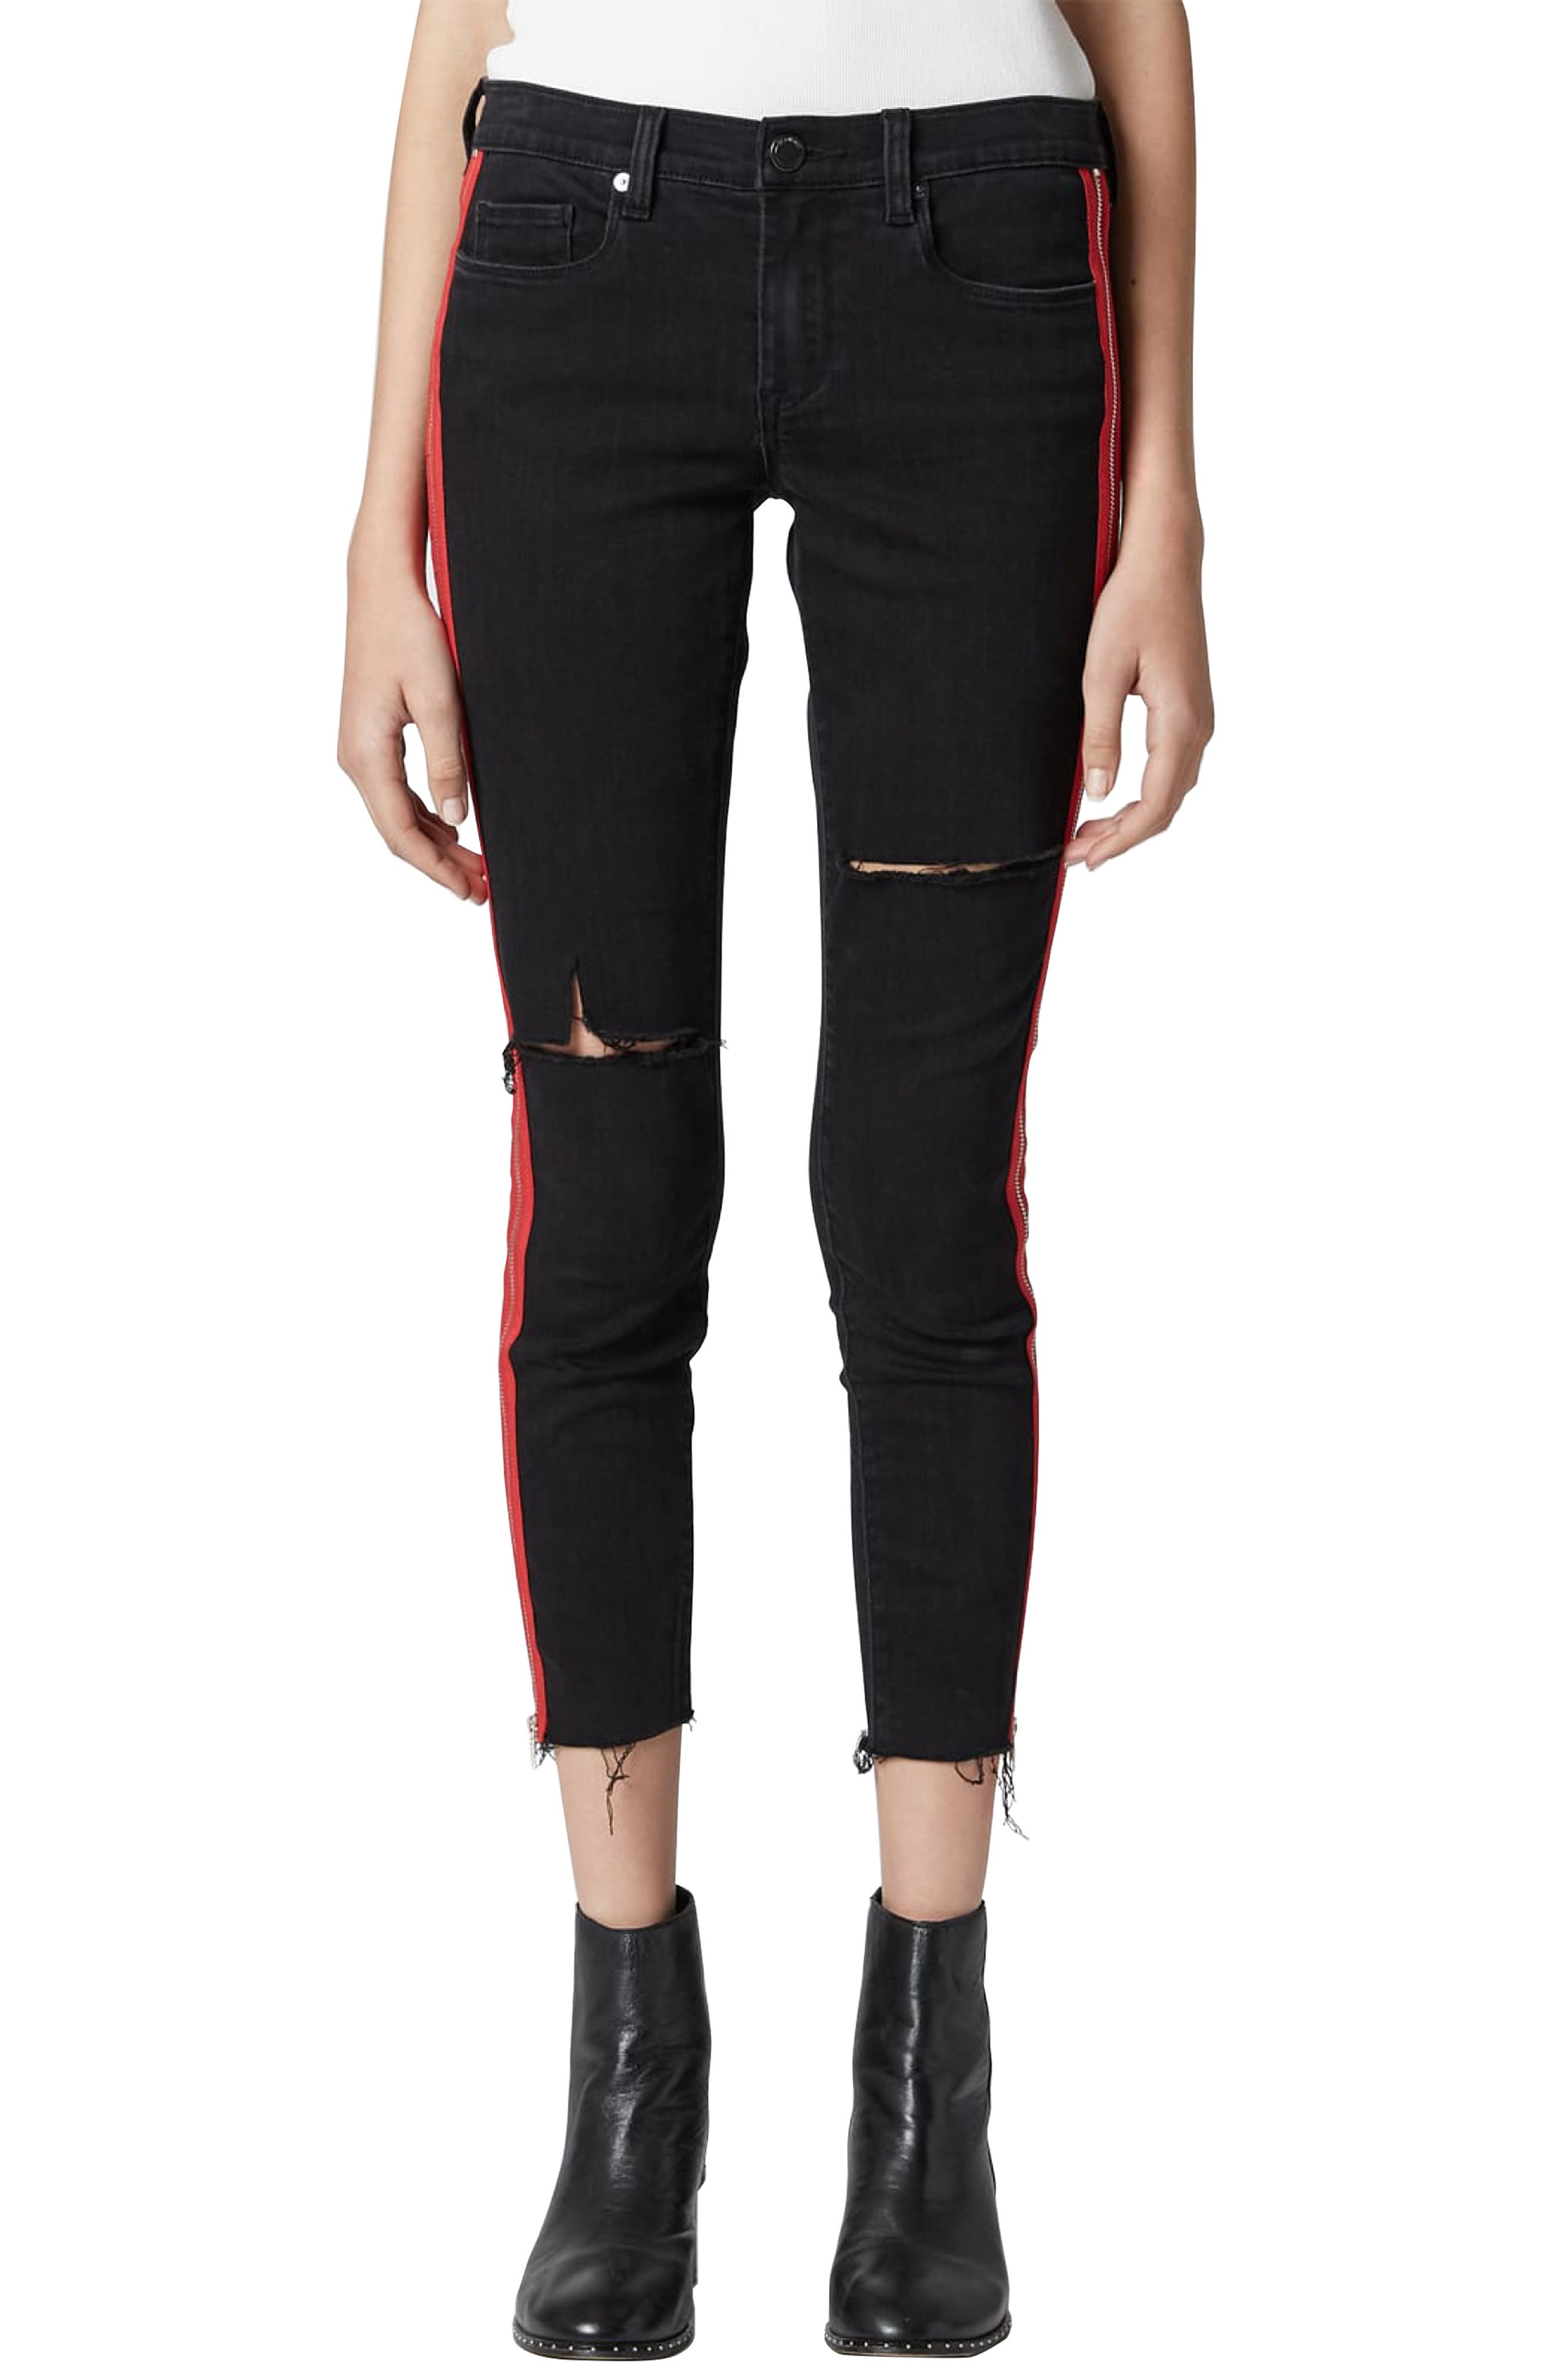 BLANKNYC The Bond Side Zip Ripped Skinny Jeans, Main, color, 001